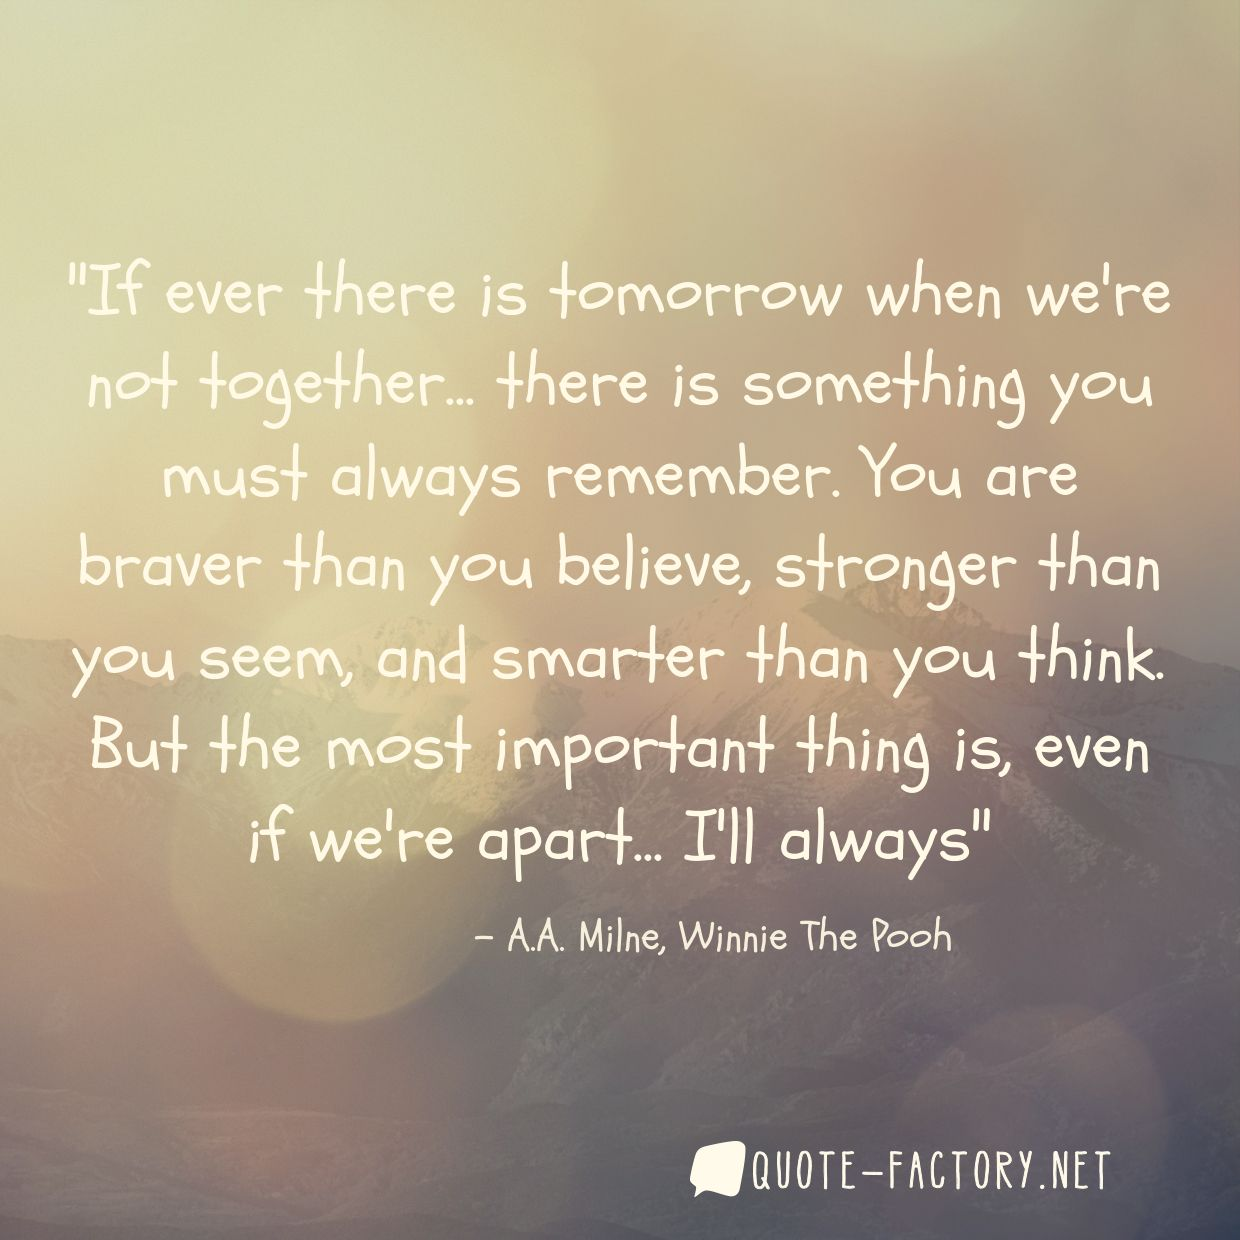 If ever there is tomorrow when we're not together... there is something you must always remember. You are braver than you believe, stronger than you seem, and smarter than you think. But the most important thing is, even if we're apart... I'll always